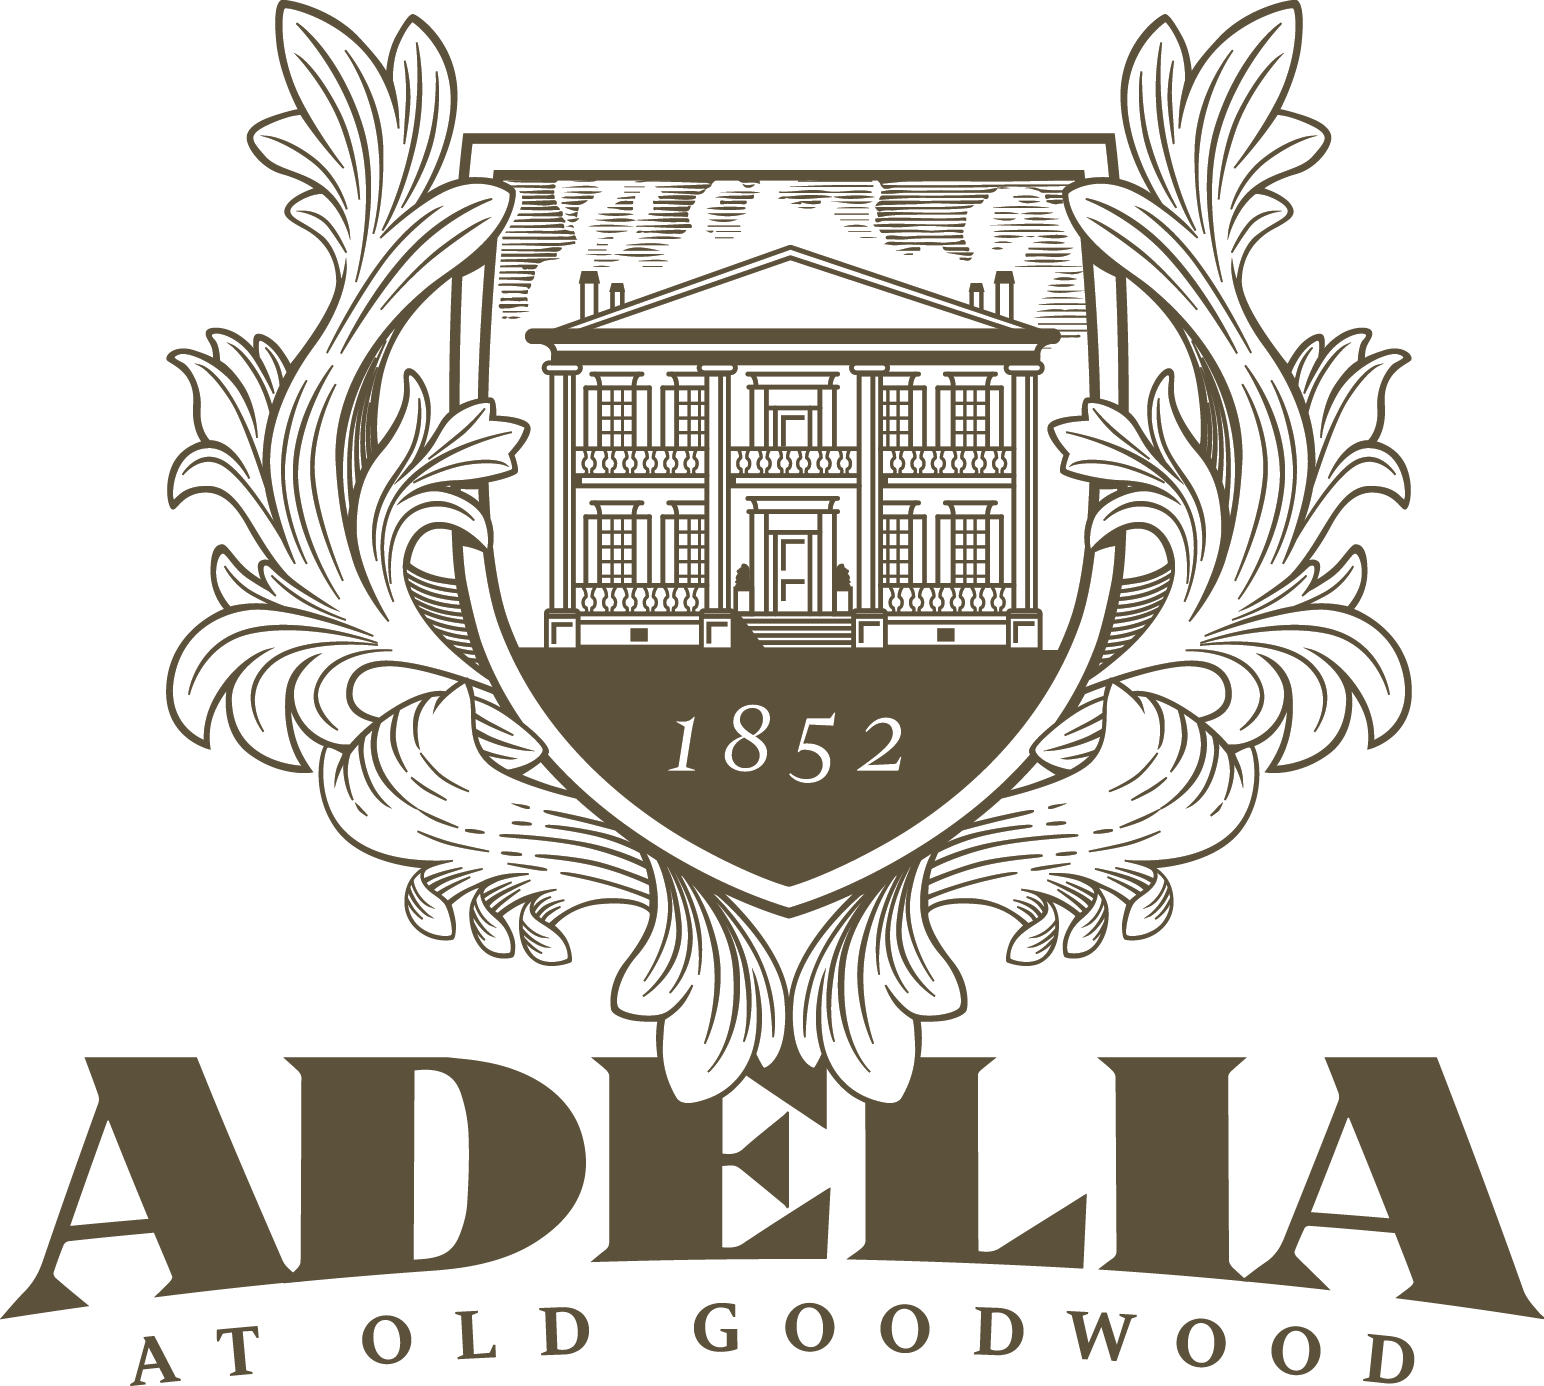 Adelia at Old Goodwood